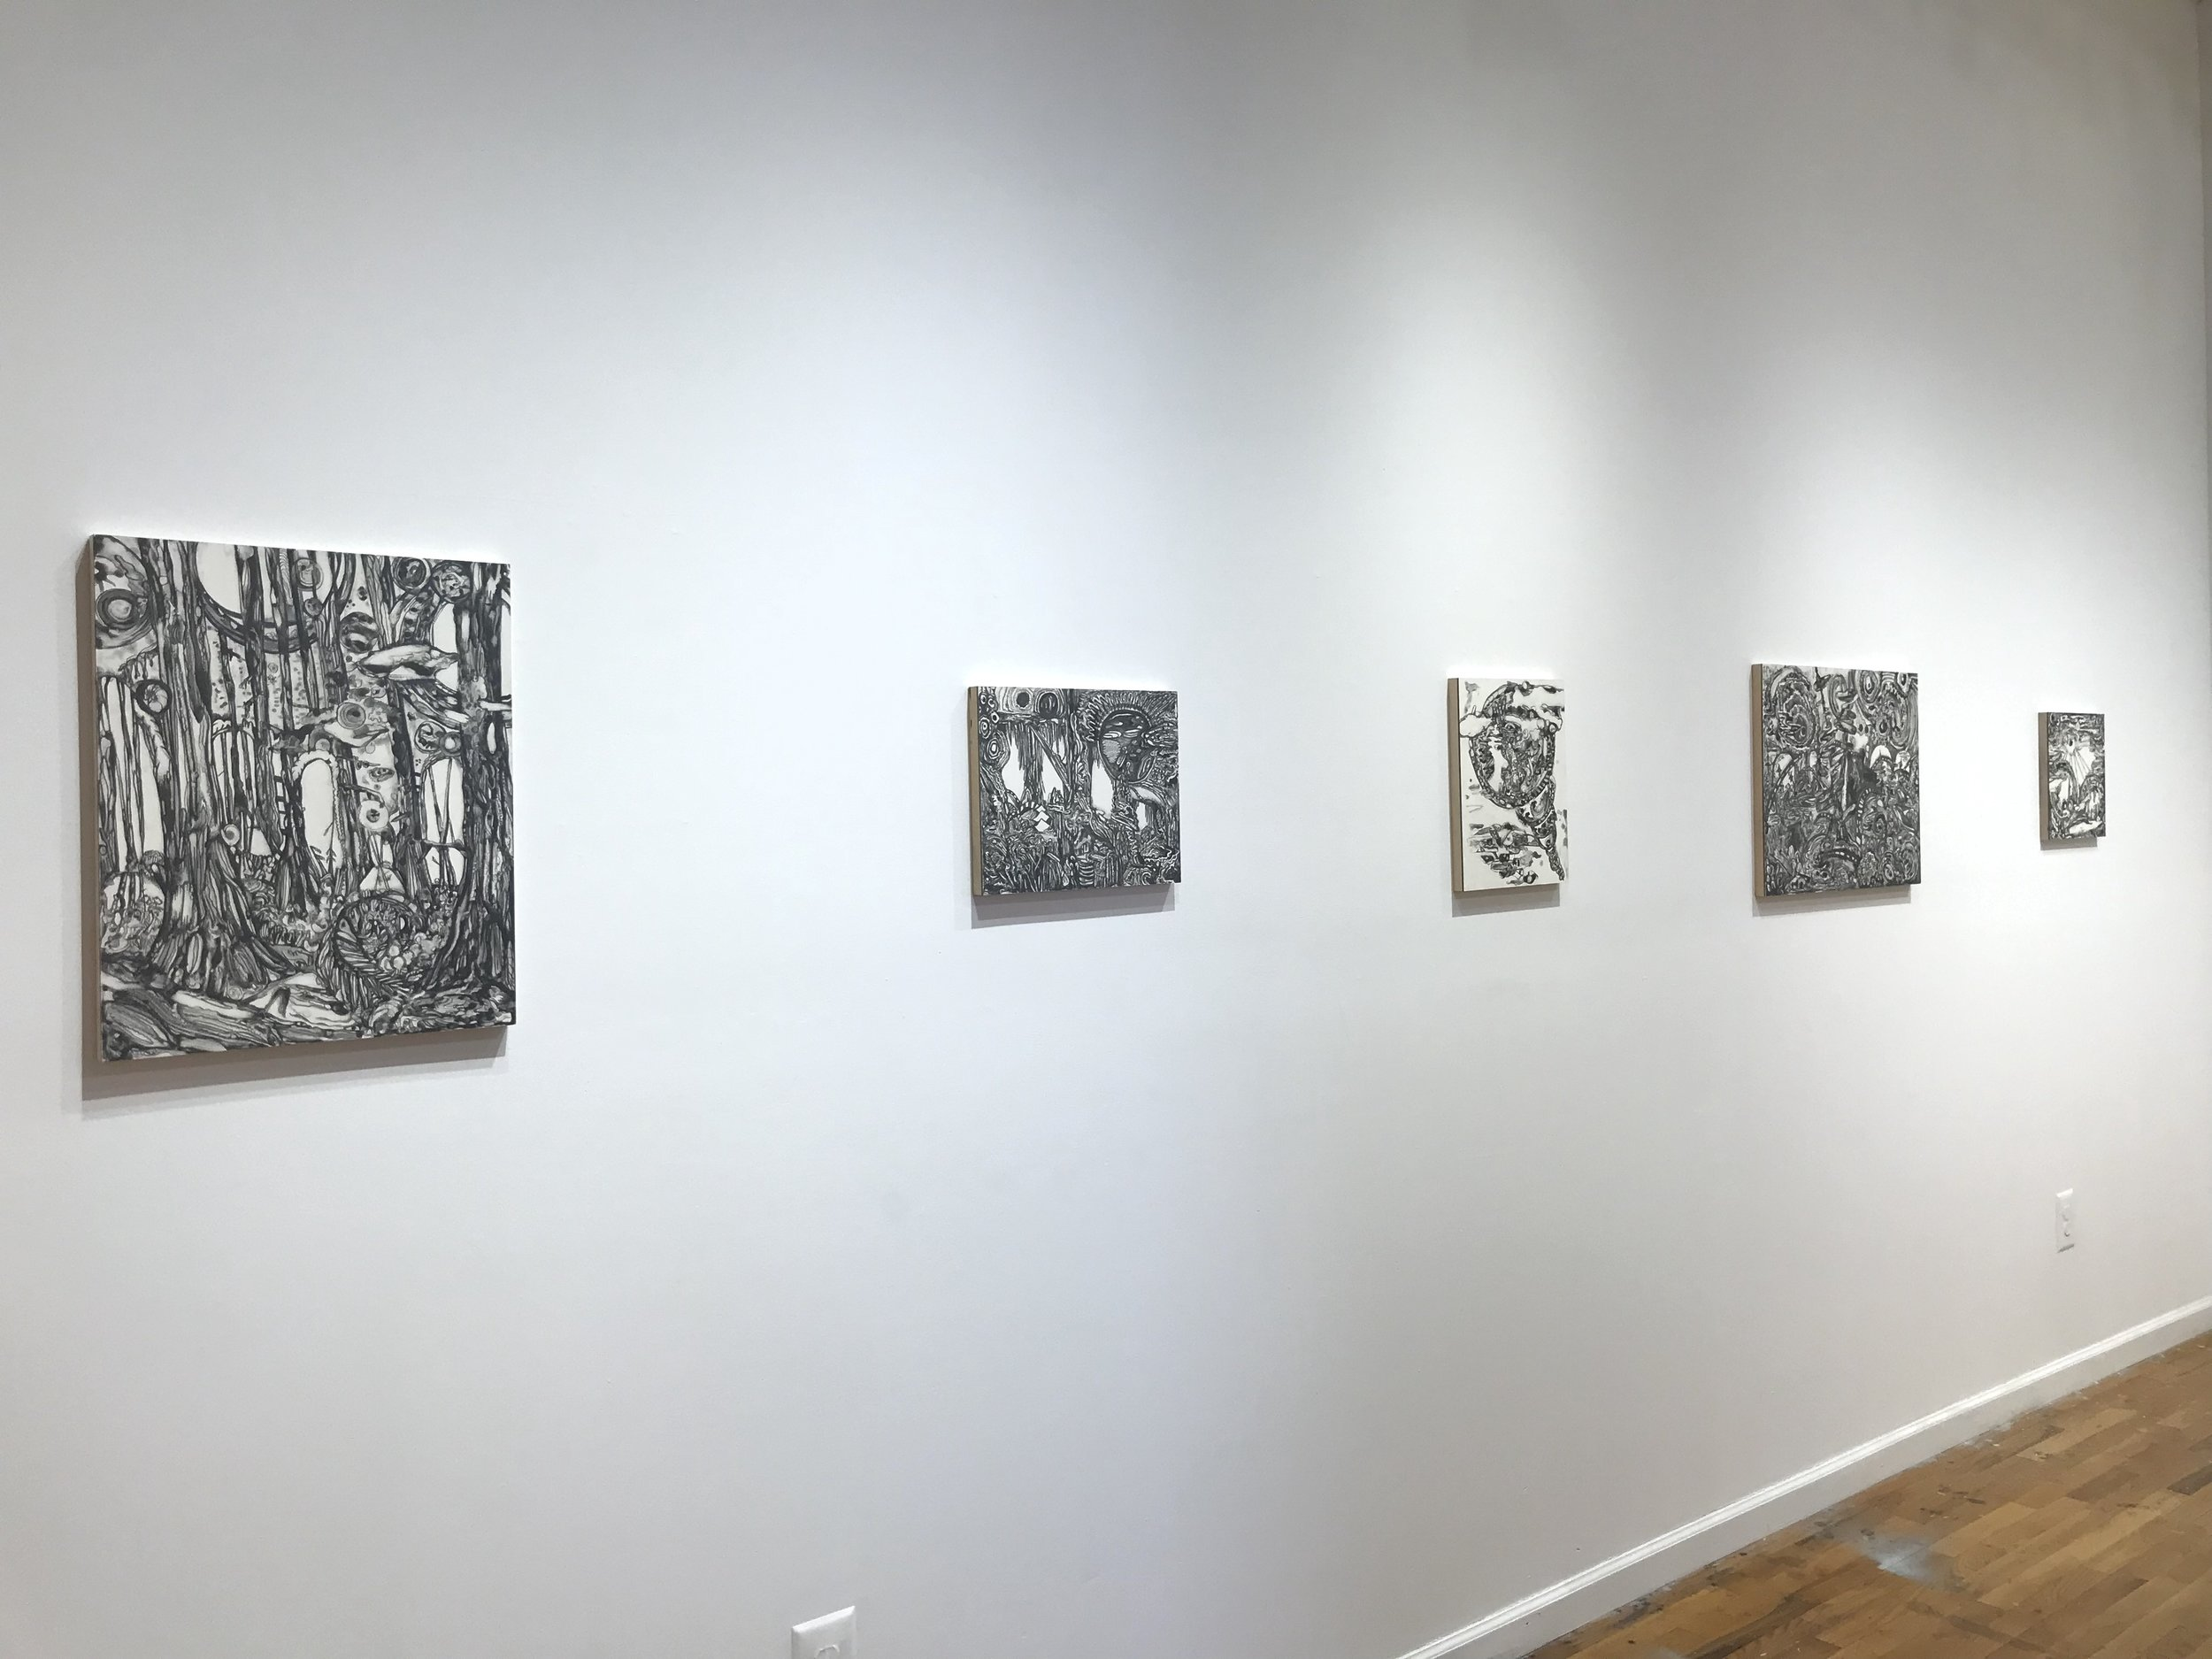 installation view of graphite works by Maria Calandra